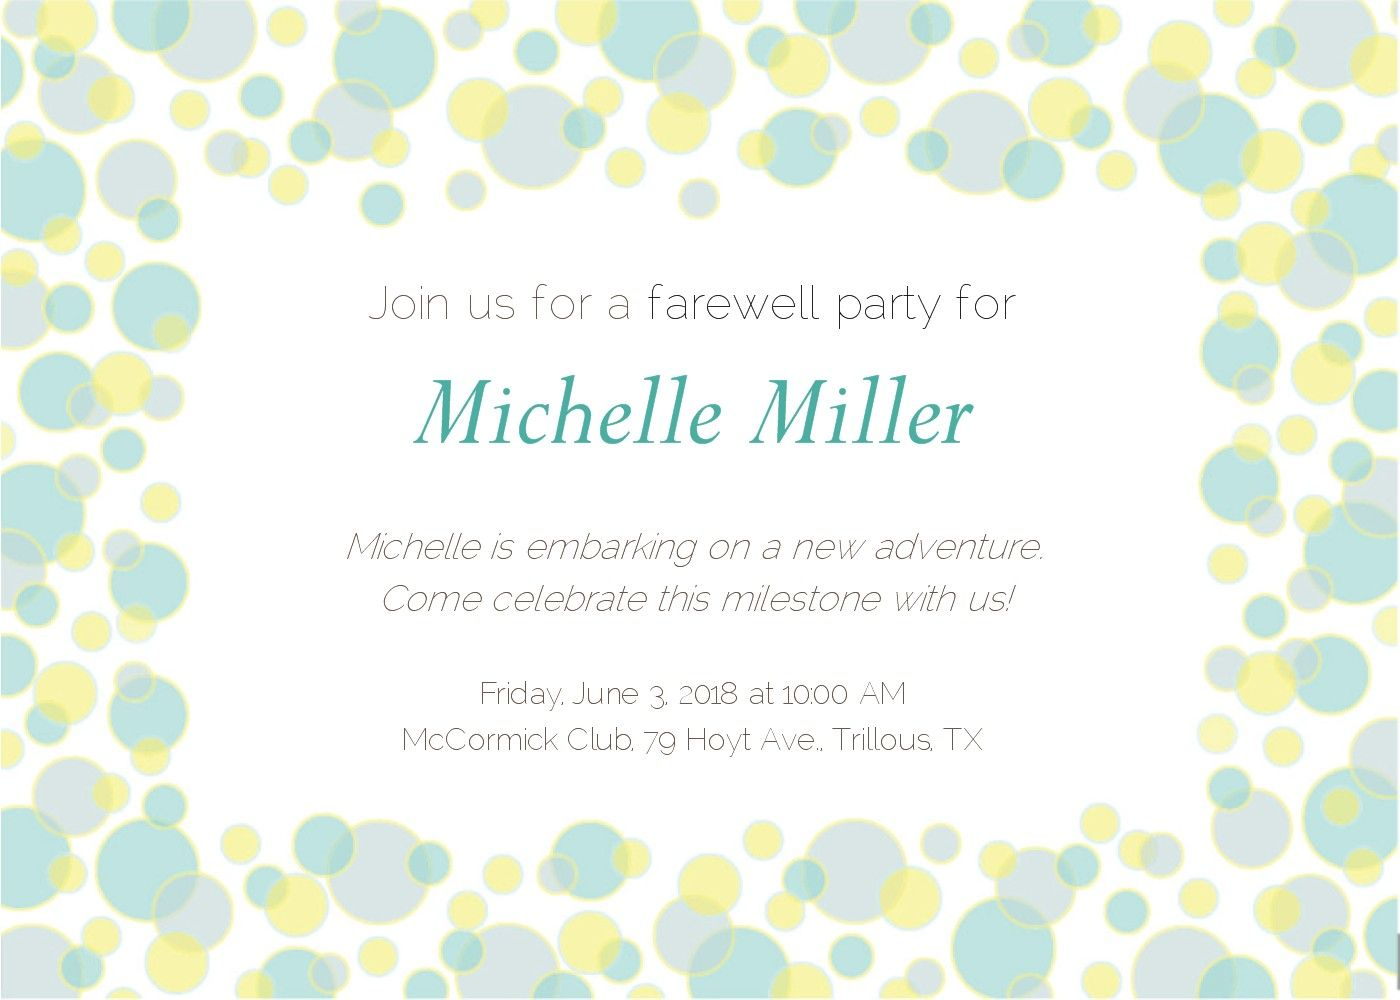 This Cheerful Farewell Invitation Is A Delightful Way To Say Goodbye